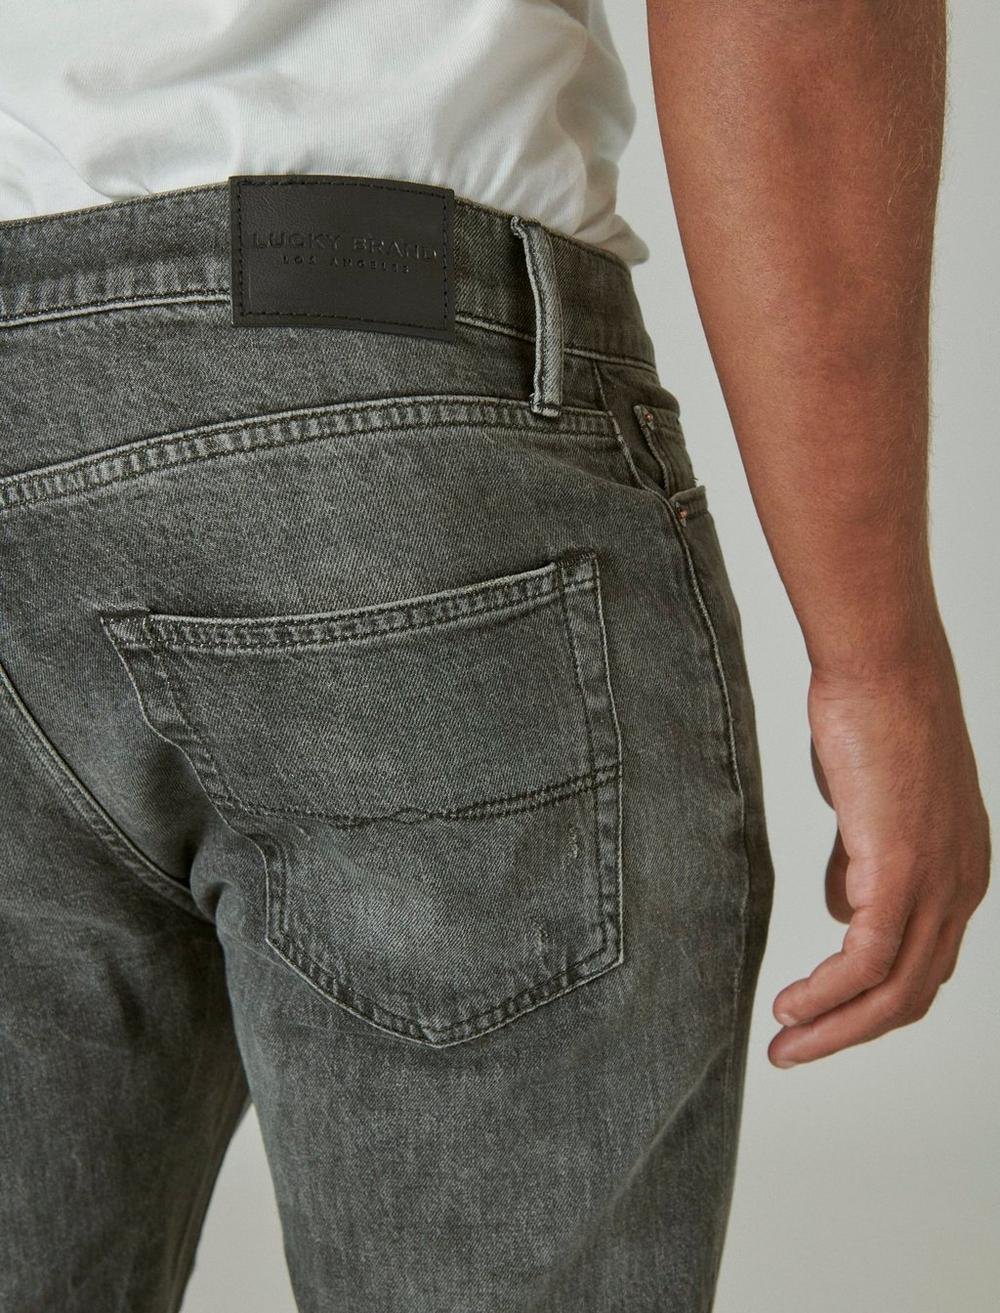 410 ATHLETIC STRAIGHT JEAN, image 5